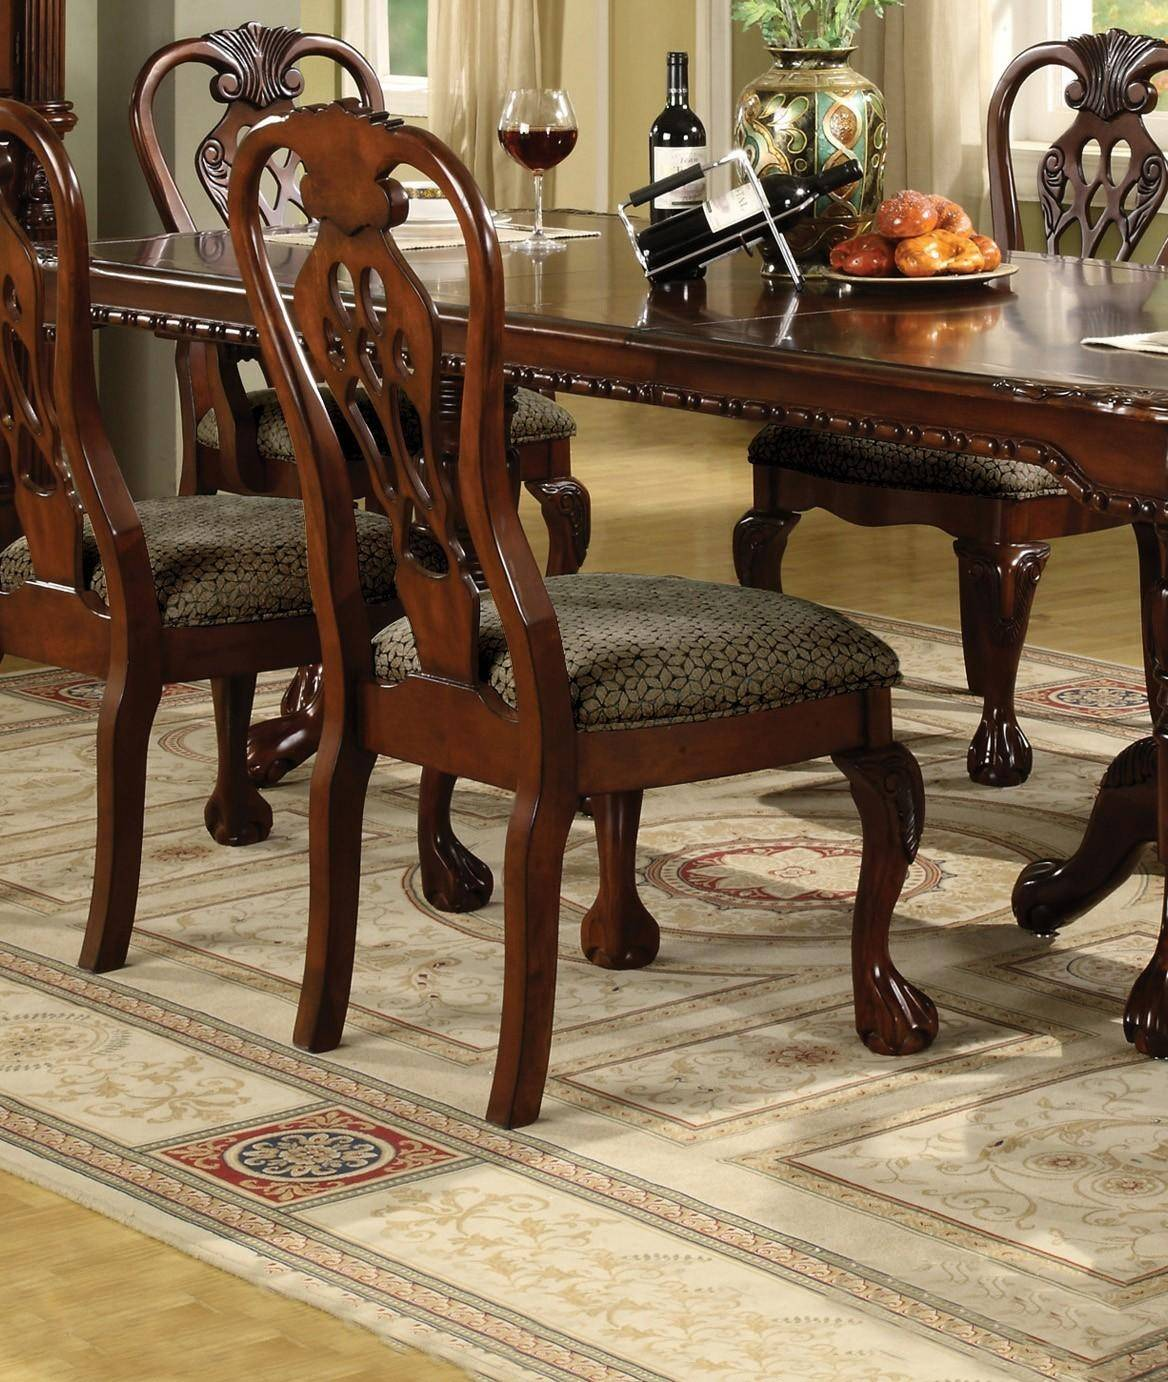 7 Pc Dining Room Sets: Crown Mark 7 Pc Brunswick Formal Dining Room Set, Includes